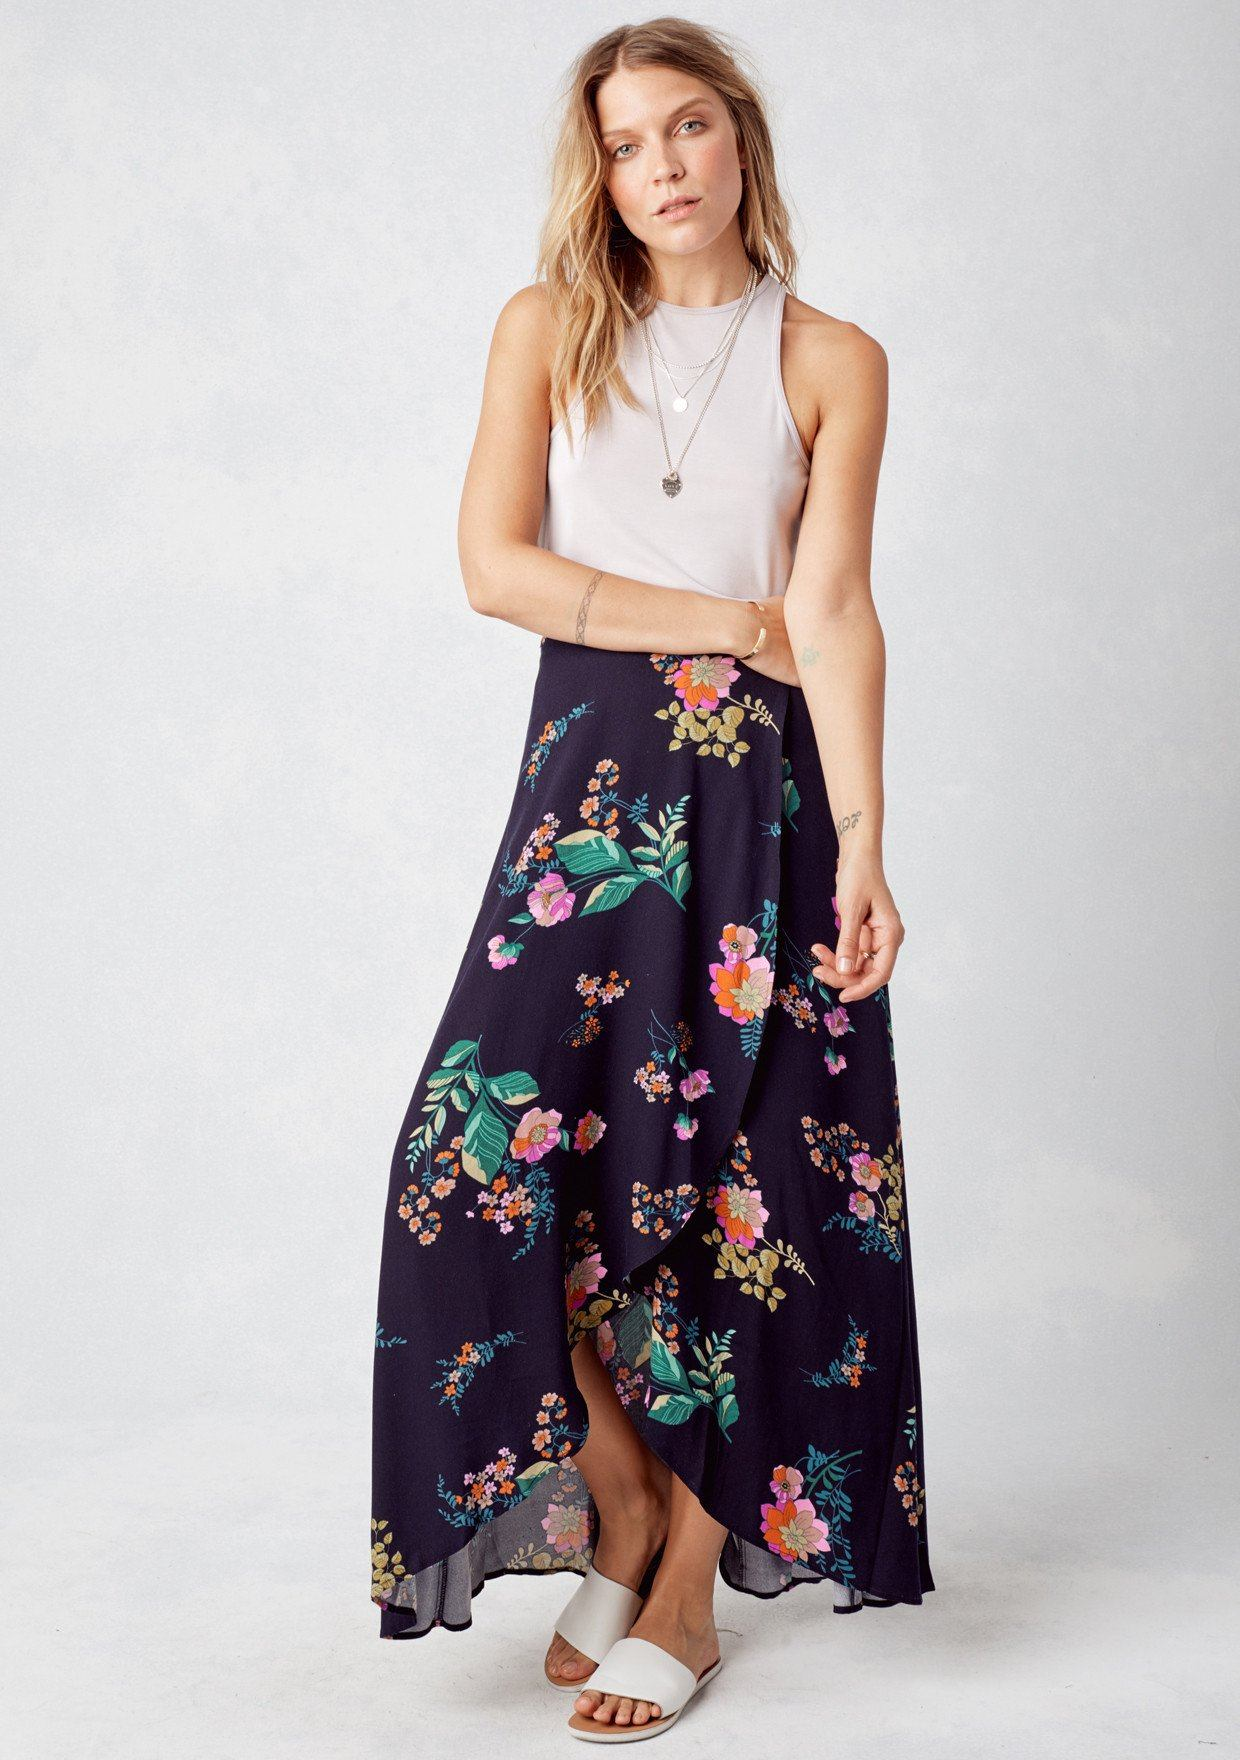 Clearance Get To Buy Outlet Release Dates Cupro Skirt - Daisy by VIDA VIDA Discount Amazing Price vnCPW